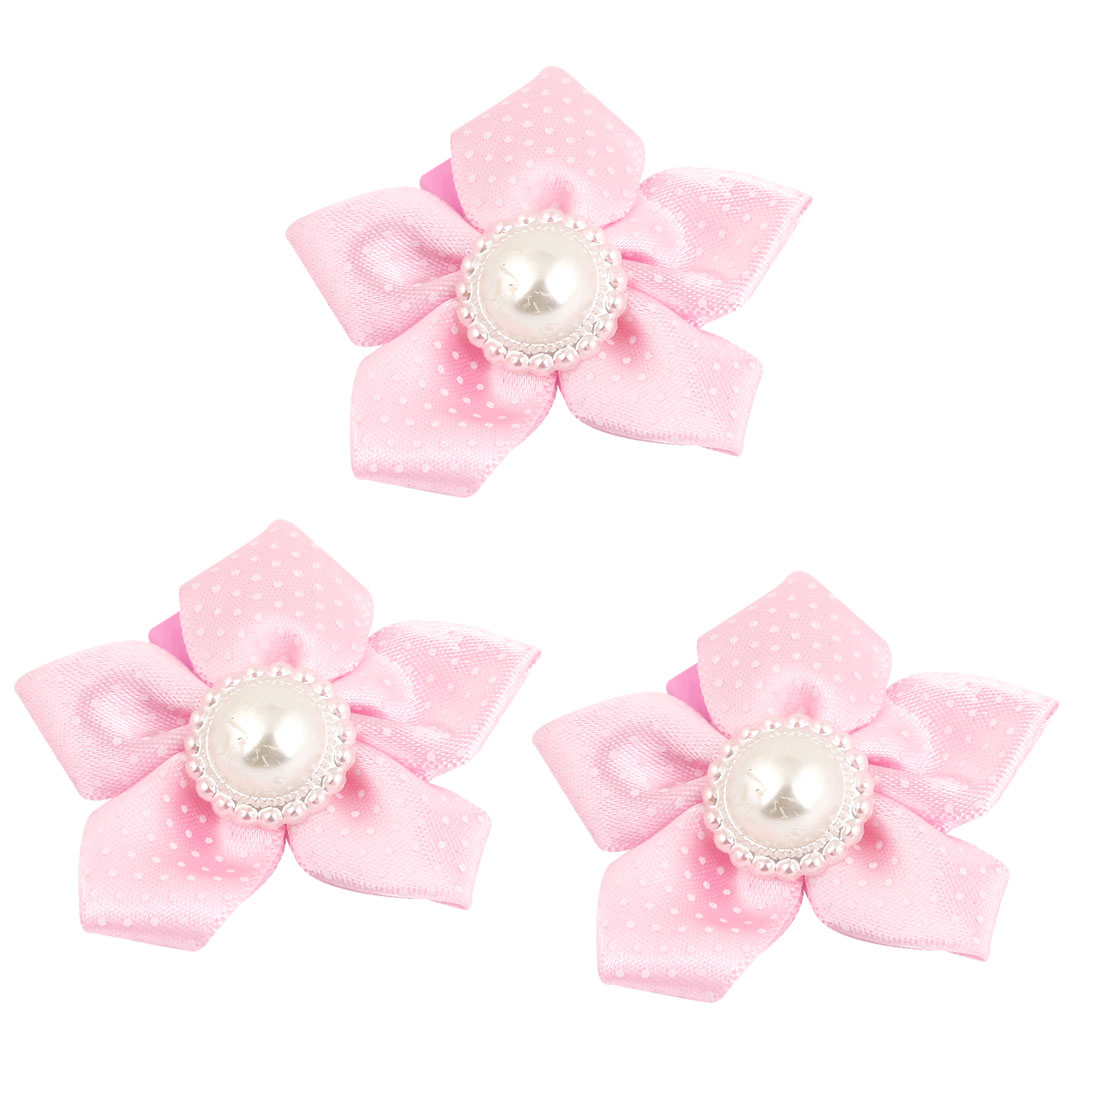 3PCS Faux Pearl Decor Pink Sunflower Shaped Metal Hair Clips for Girls Lady